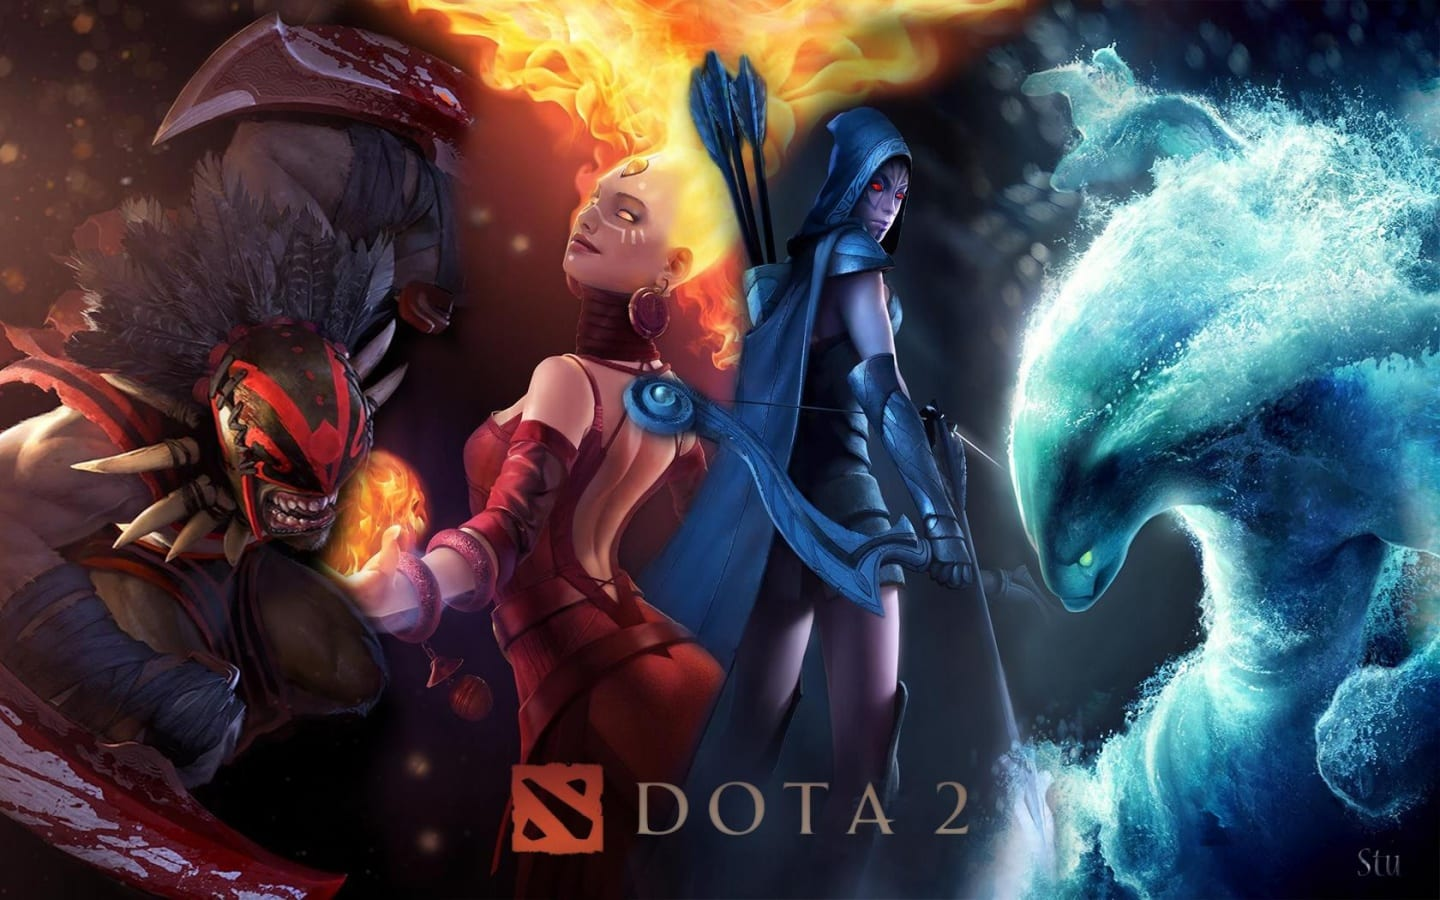 ASUS ROG becomes the official Dota 2 tournament sponsor for Insomnia festivals in 2014